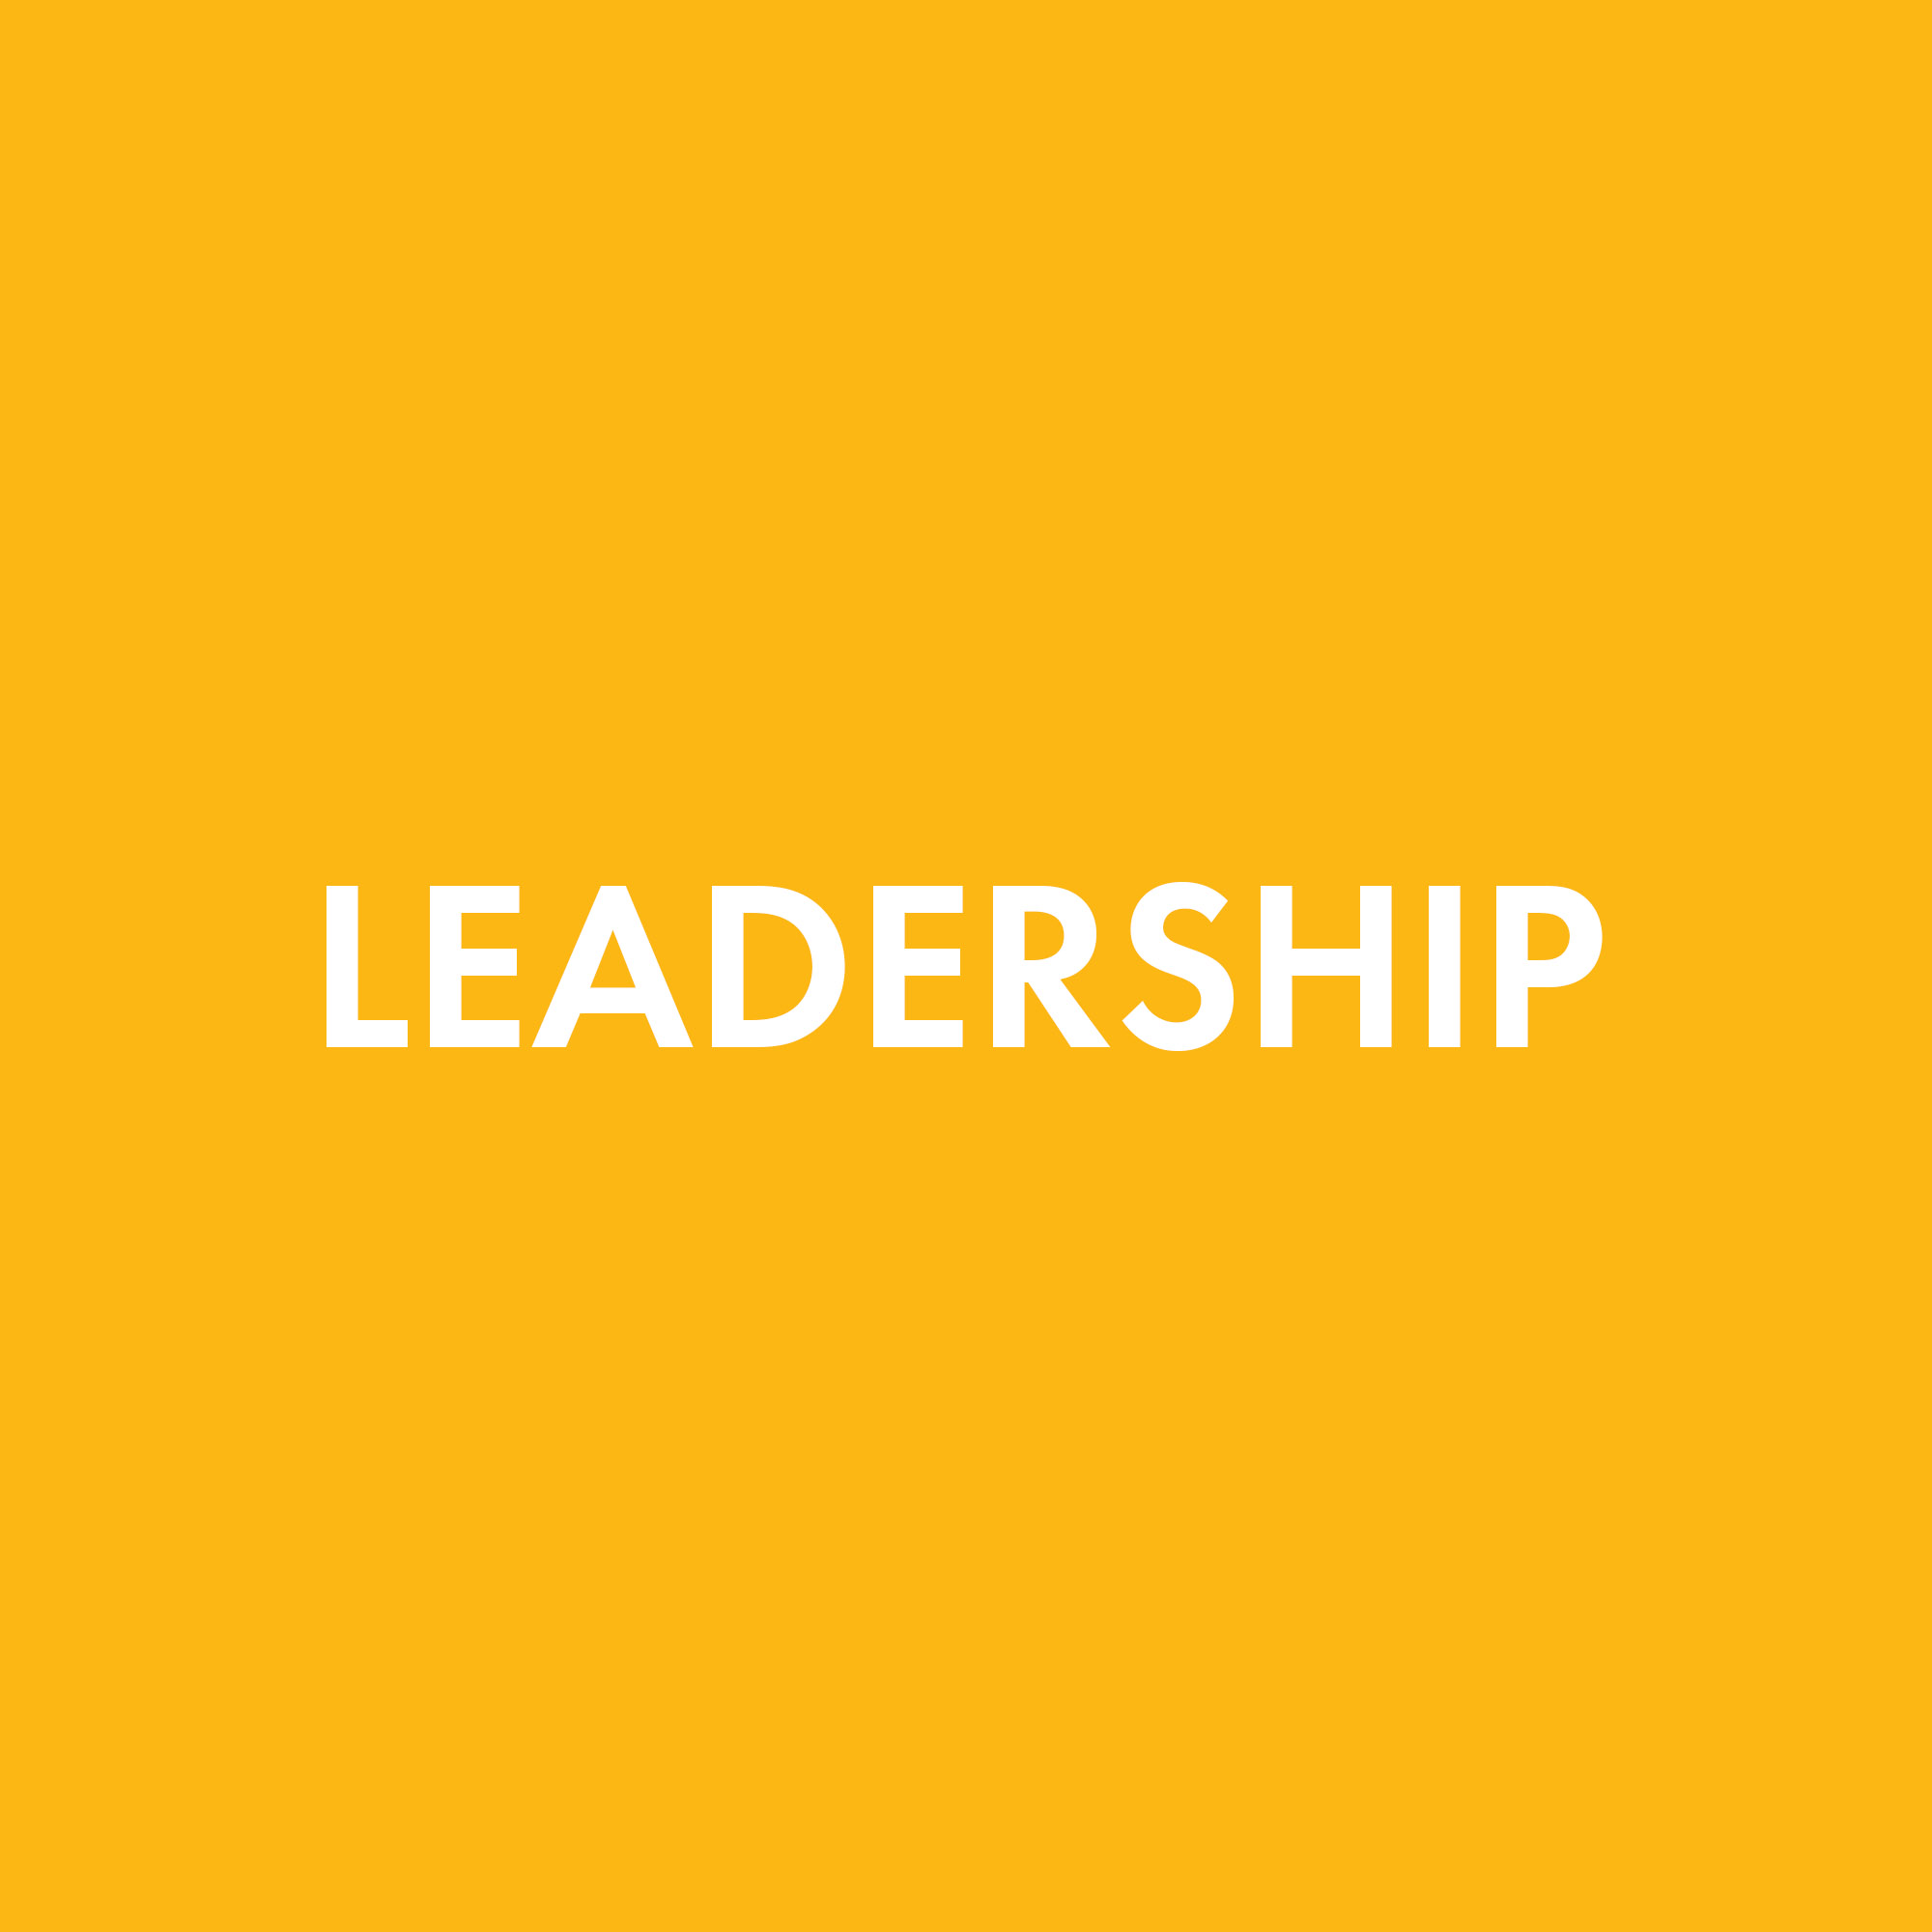 We approach leadership as a team effort with one person, the Vicar, focussing the vision and overseeing the goal-setting.